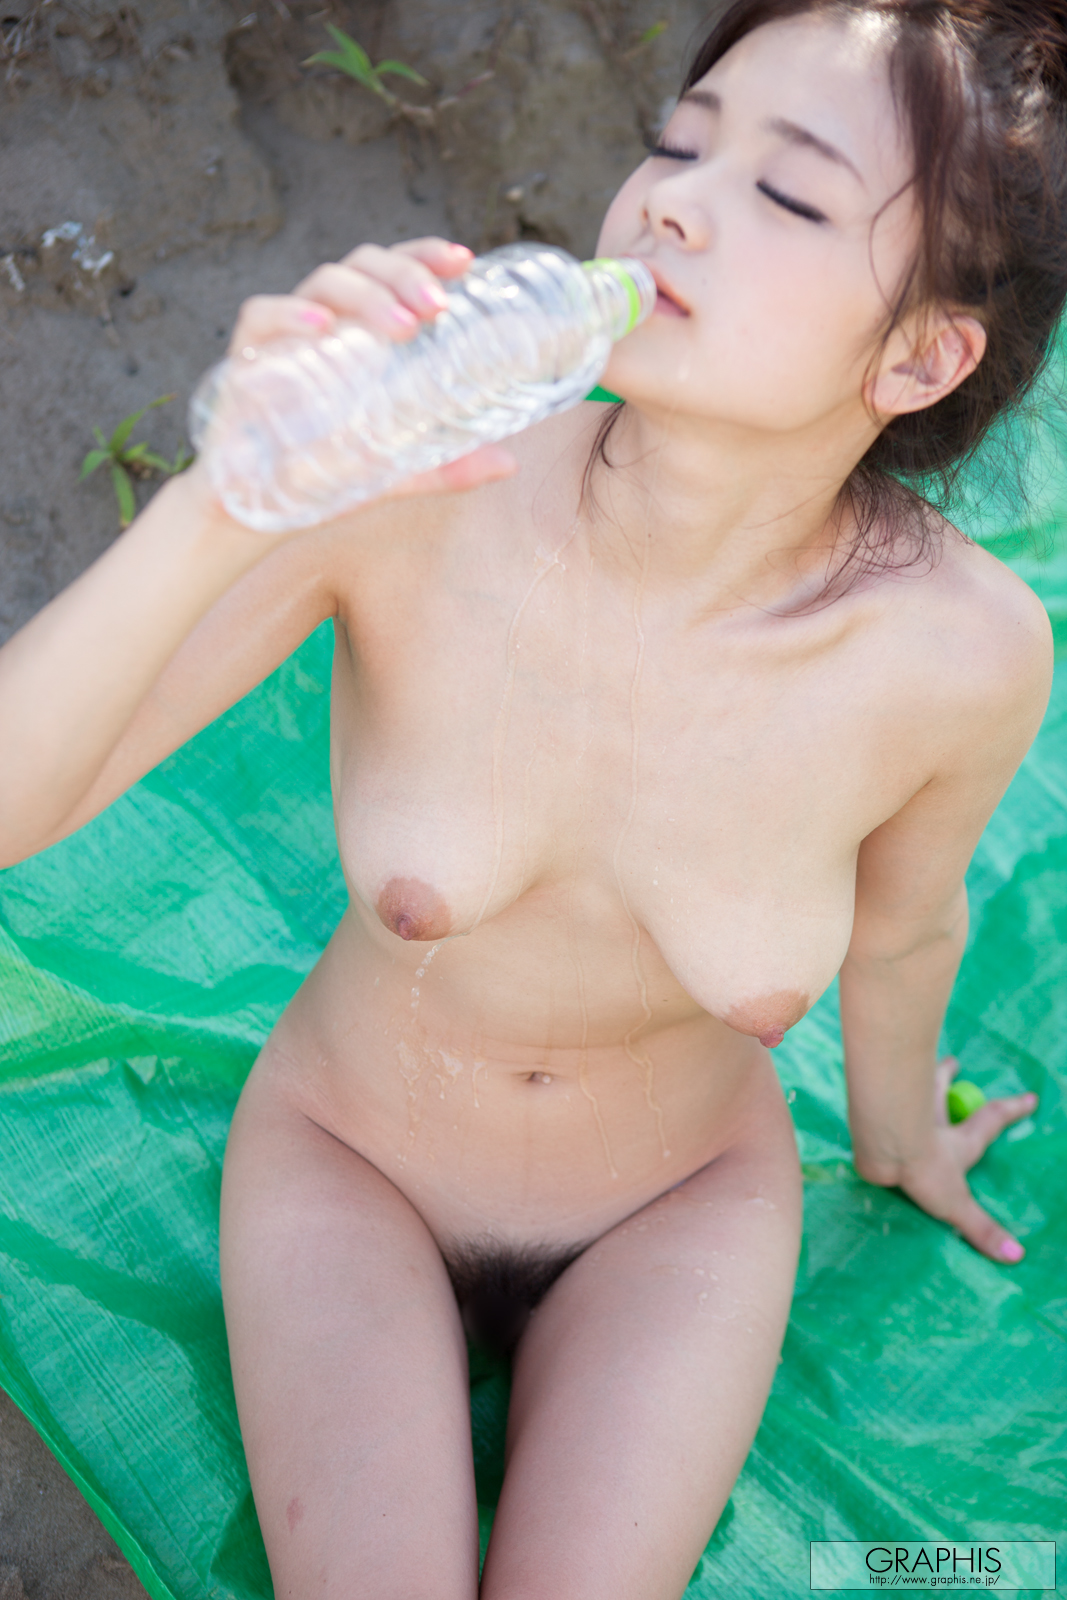 kana-tsuruta-nude-asian-graphis-12